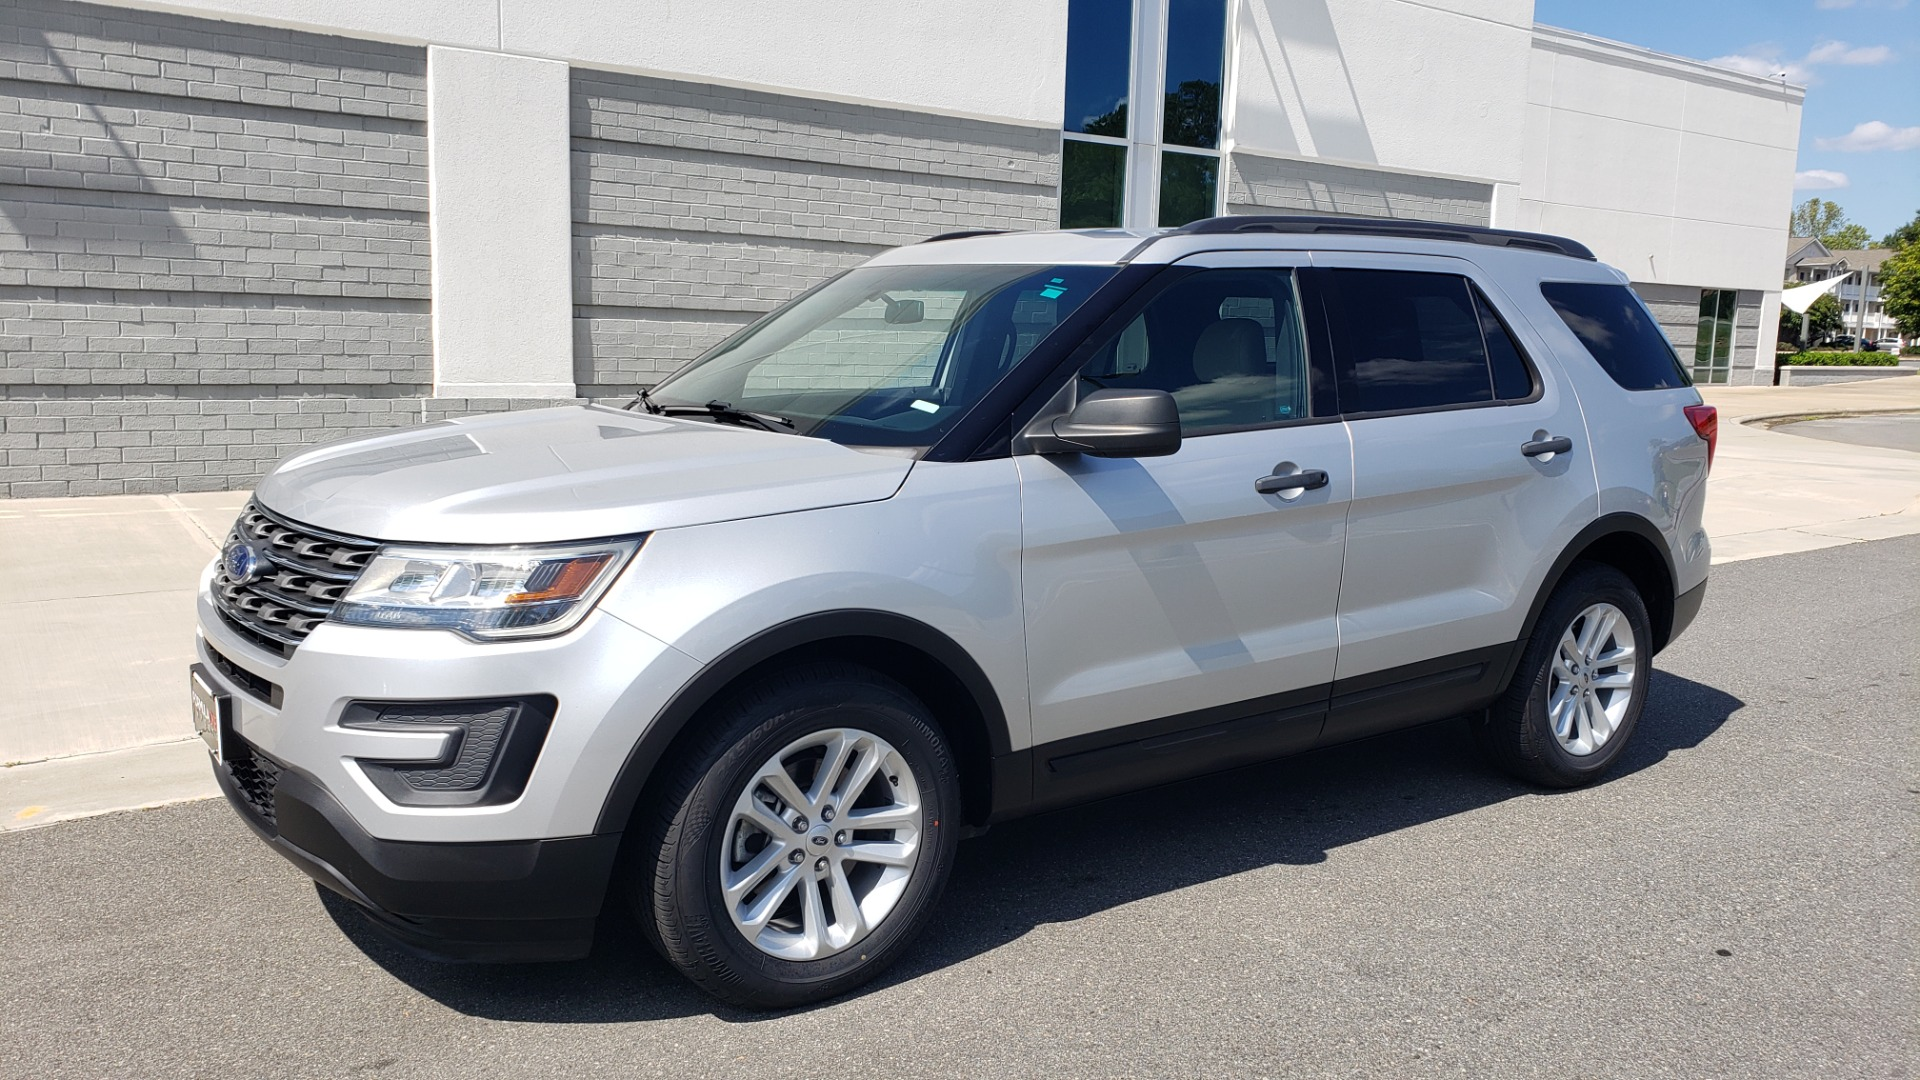 Used 2017 Ford EXPLORER 3.5L V6 / 6-SPD AUTO / BLIND SPOT MONITOR / 3-ROW / SYNC / REARVIEW for sale $22,995 at Formula Imports in Charlotte NC 28227 4